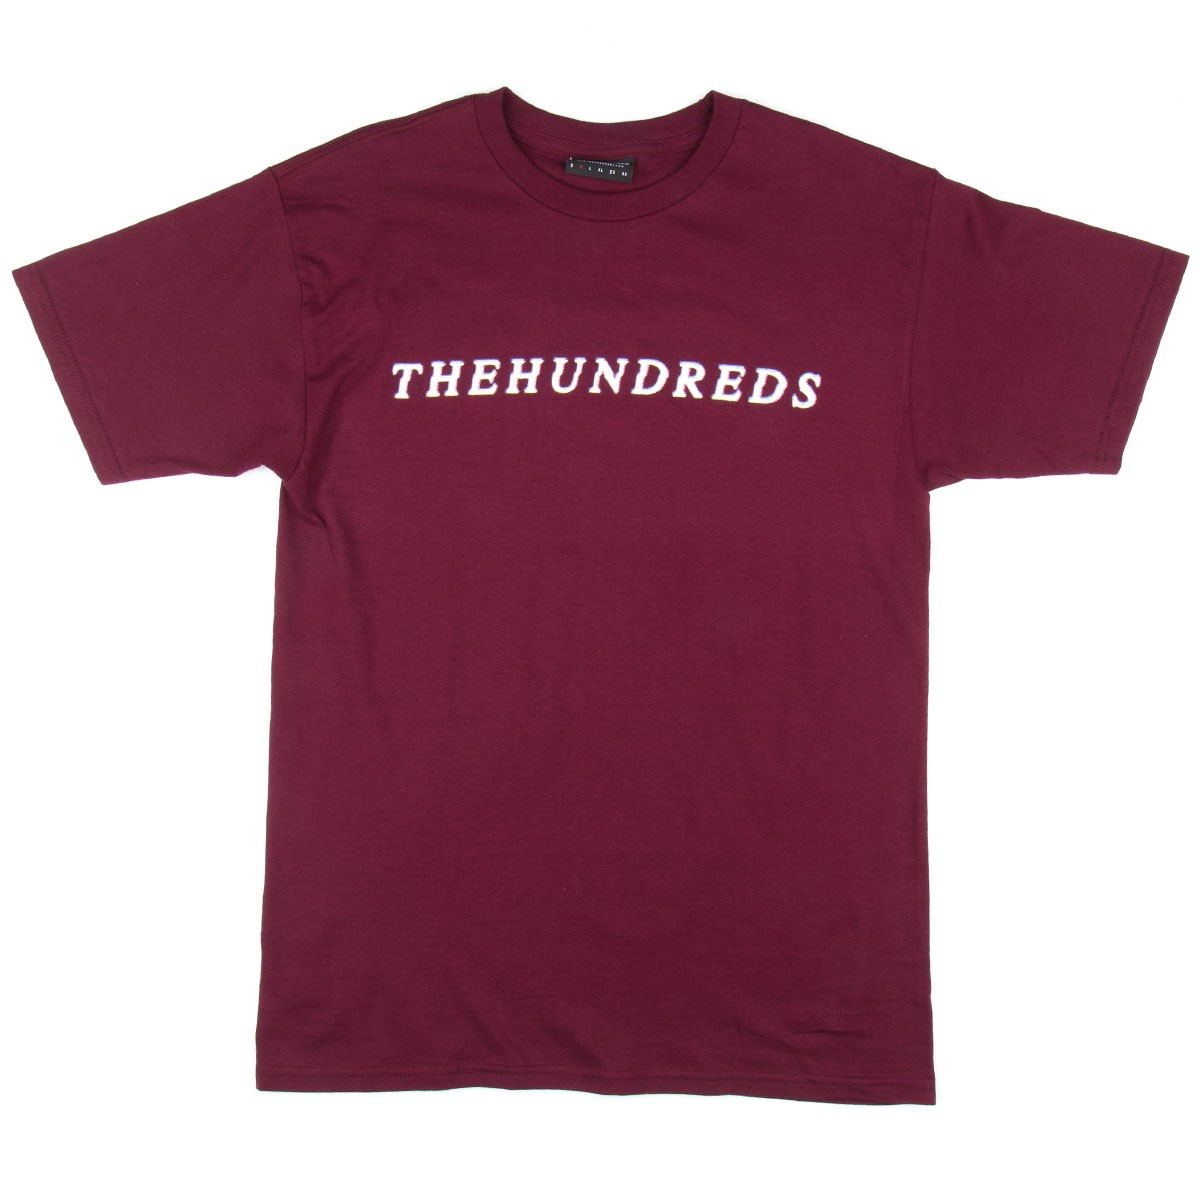 The Hundreds Cut T-Shirt - Burgundy